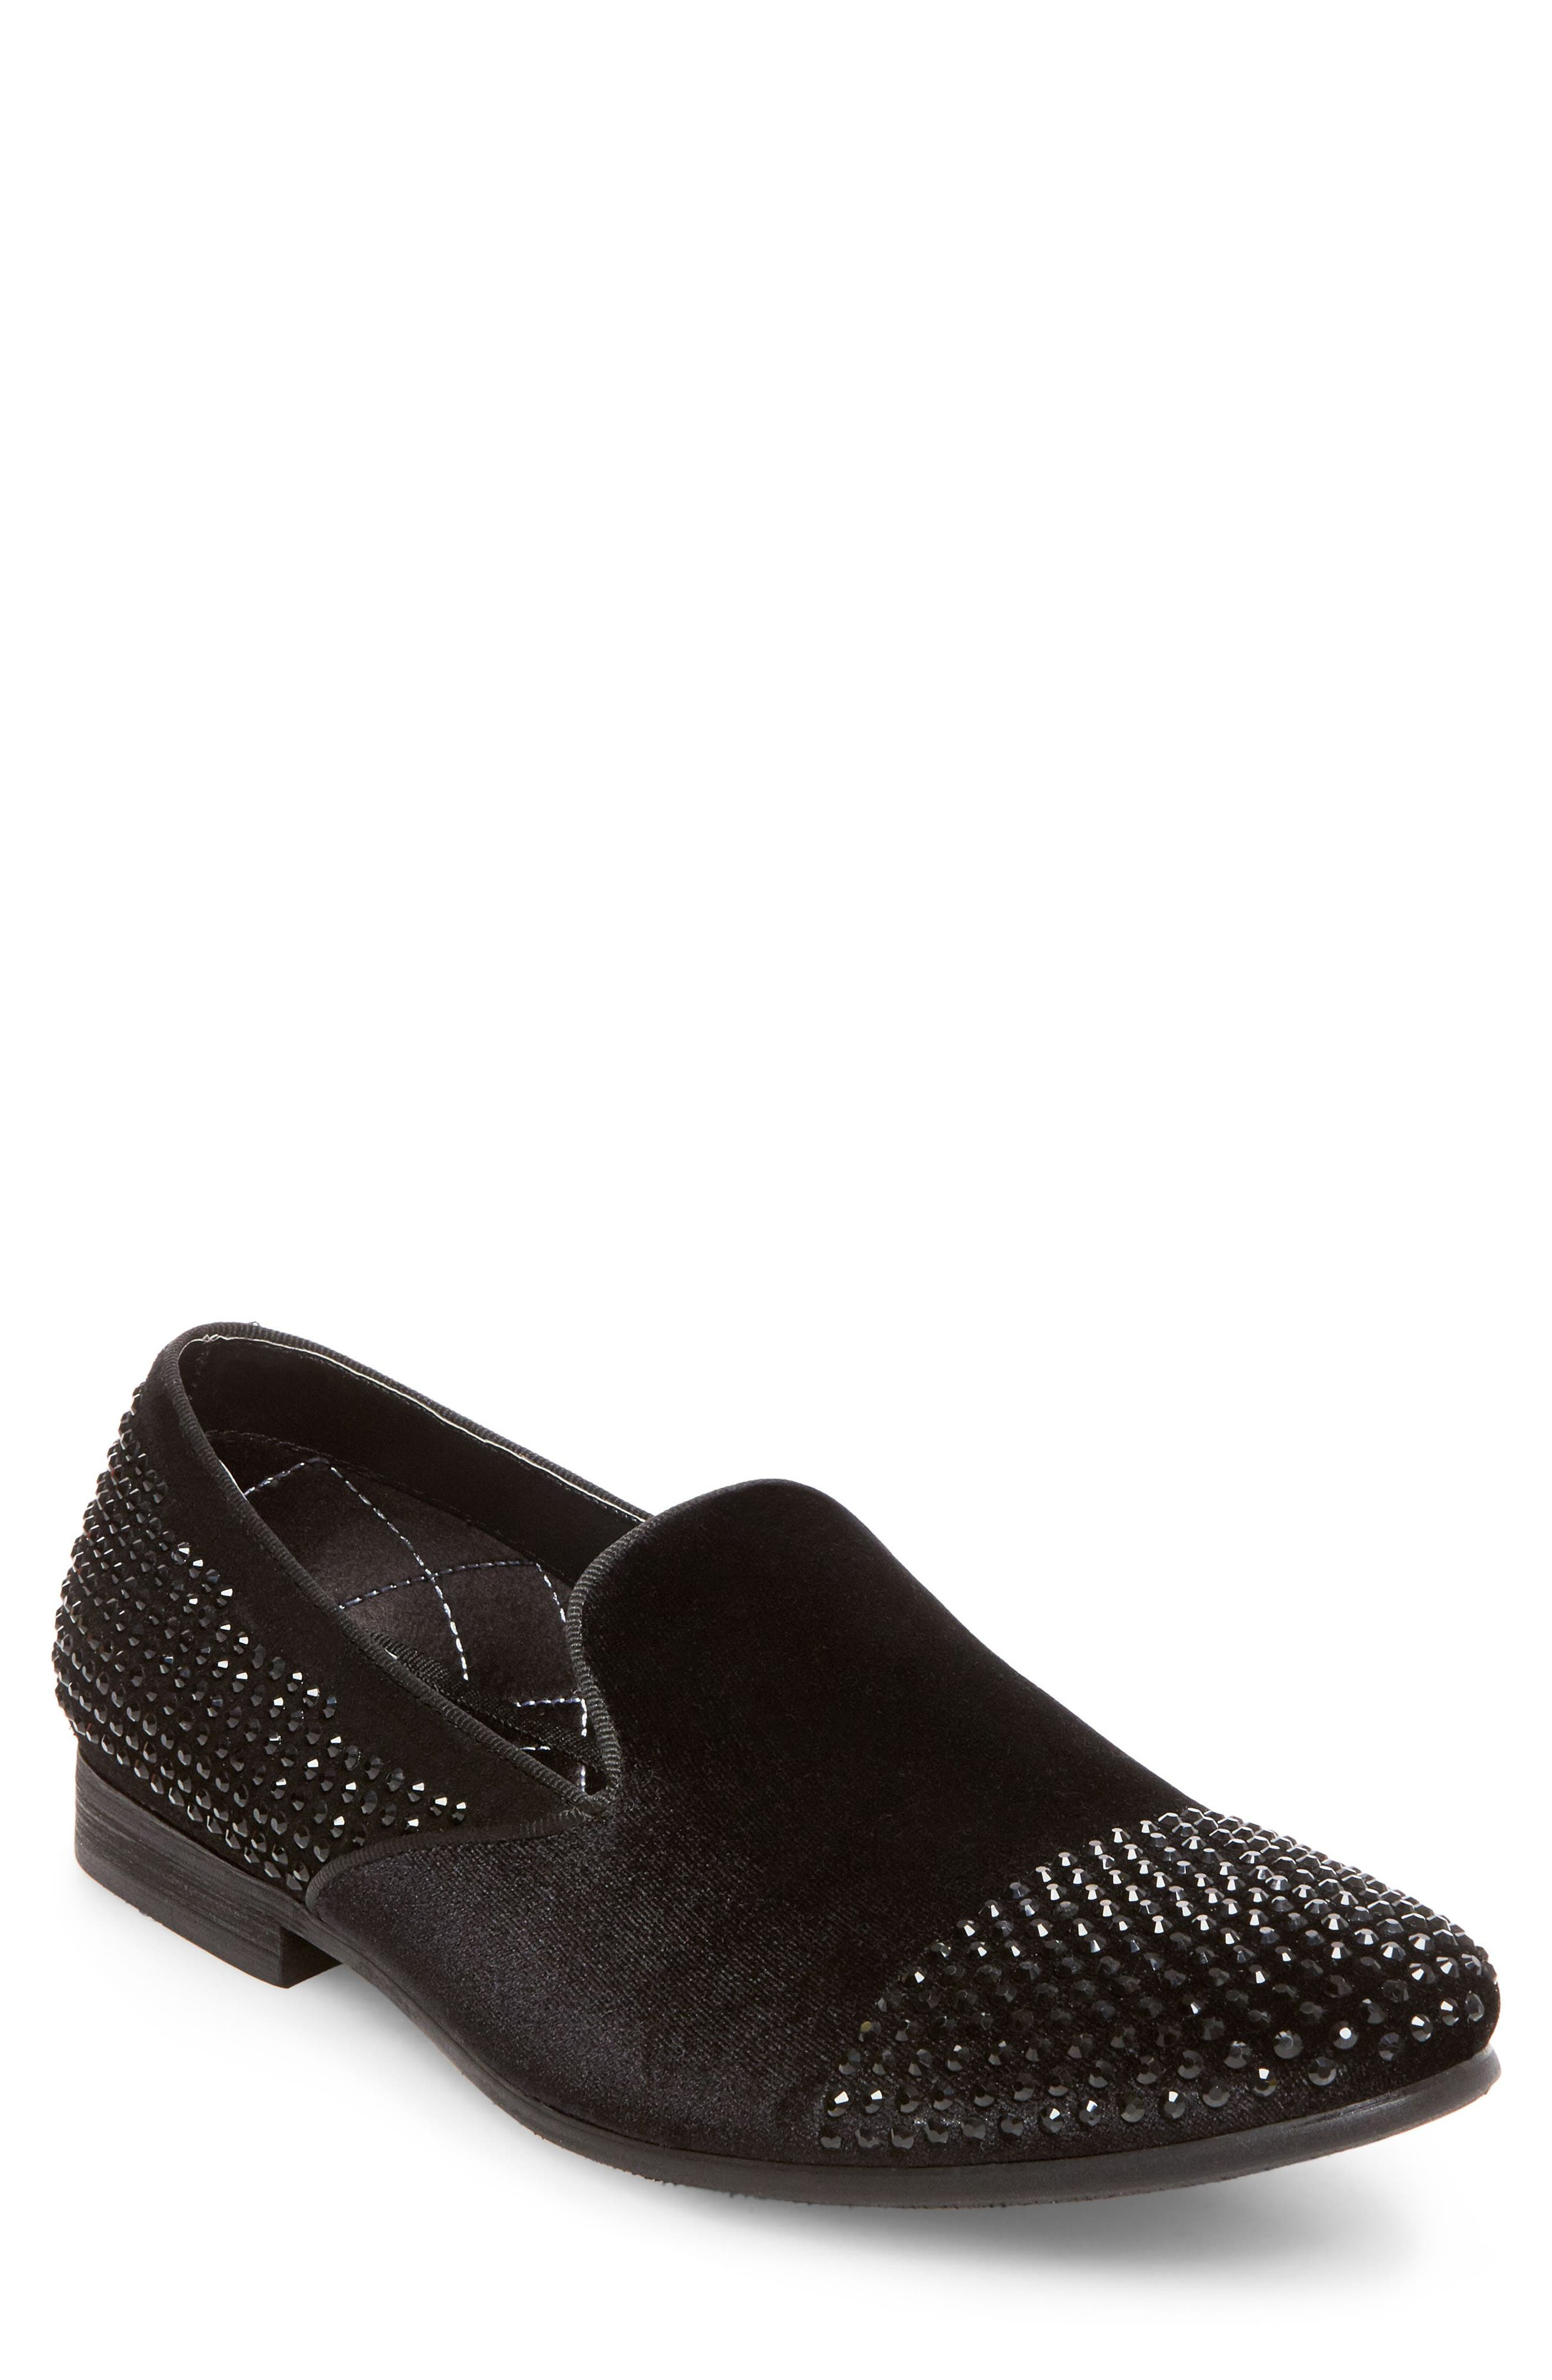 Clarity Loafer,                         Main,                         color, Black Fabric